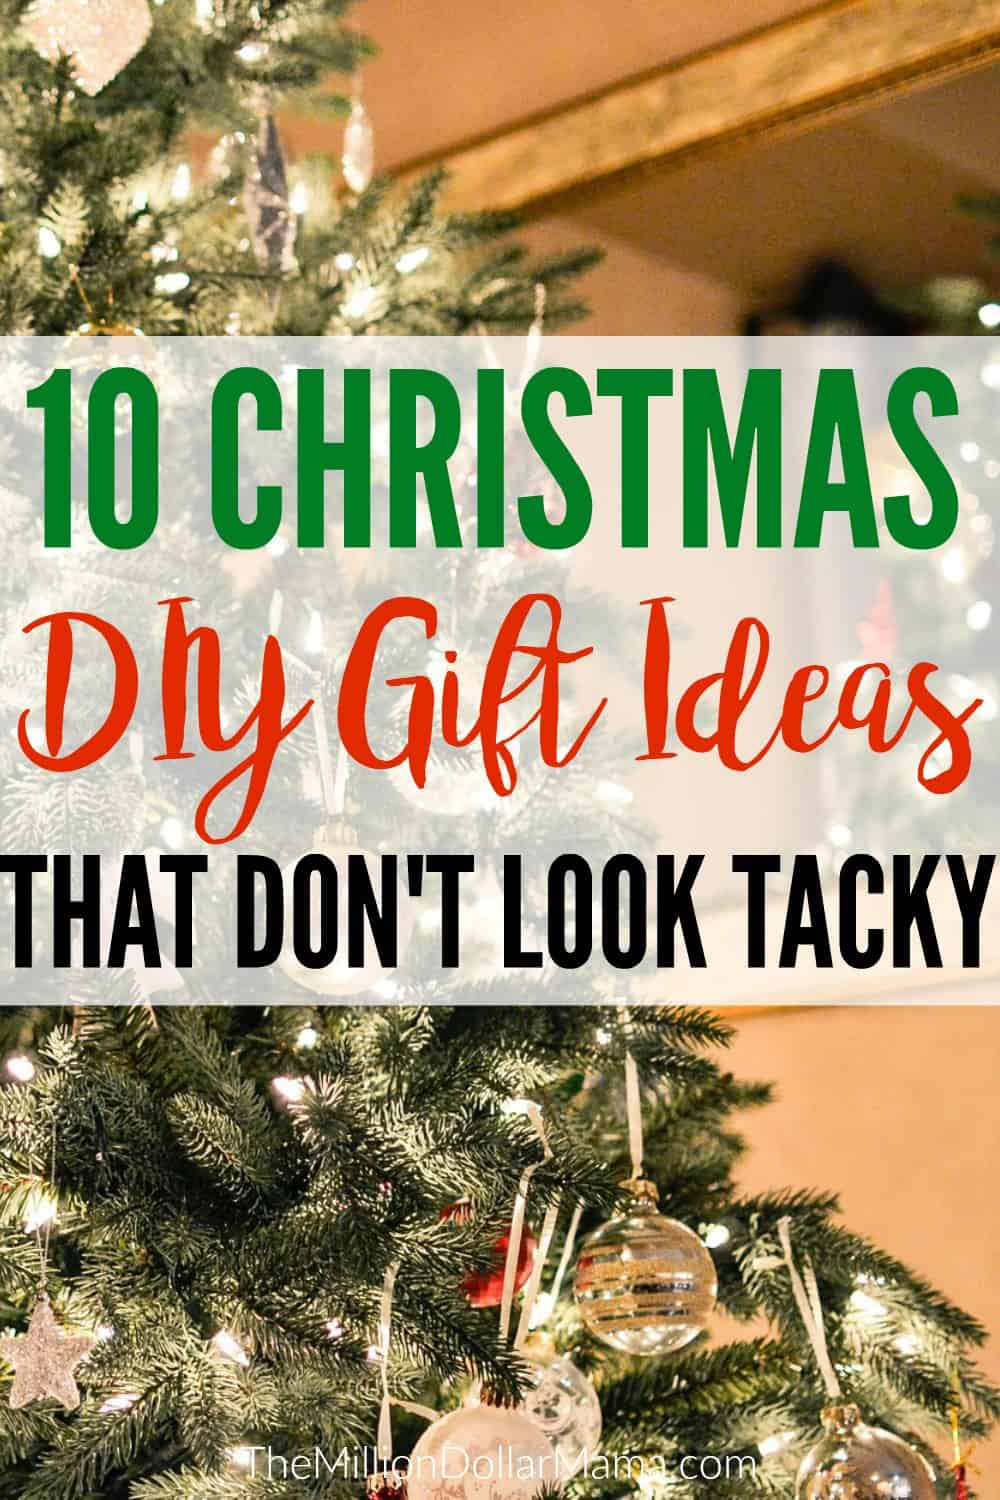 DIY Christmas gifts can be a great way to save money - here are 10 money-saving DIY Christmas gift ideas that don't look tacky!